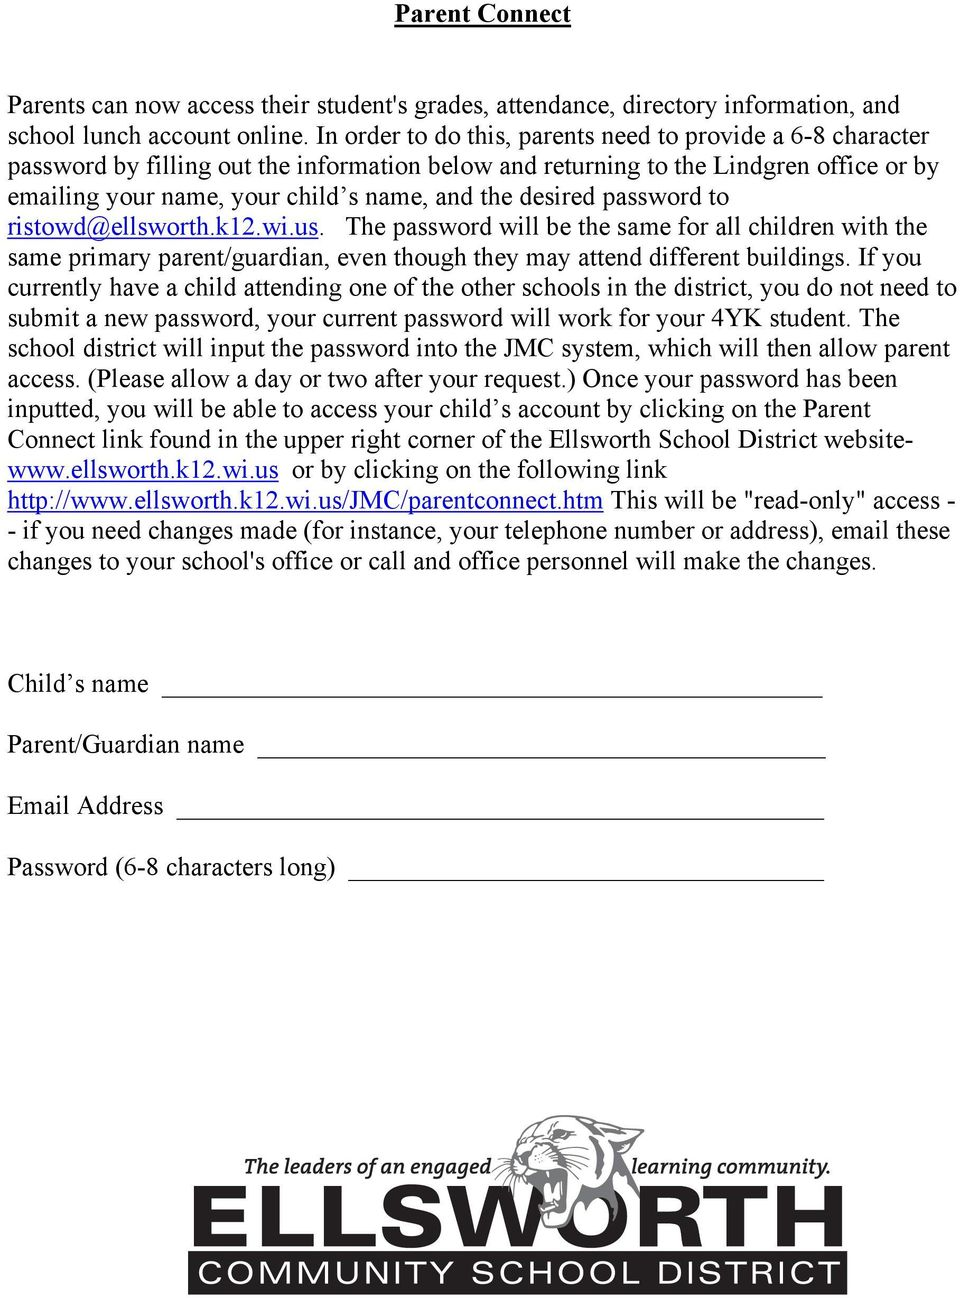 desired password to ristowd@ellsworth.k12.wi.us. The password will be the same for all children with the same primary parent/guardian, even though they may attend different buildings.